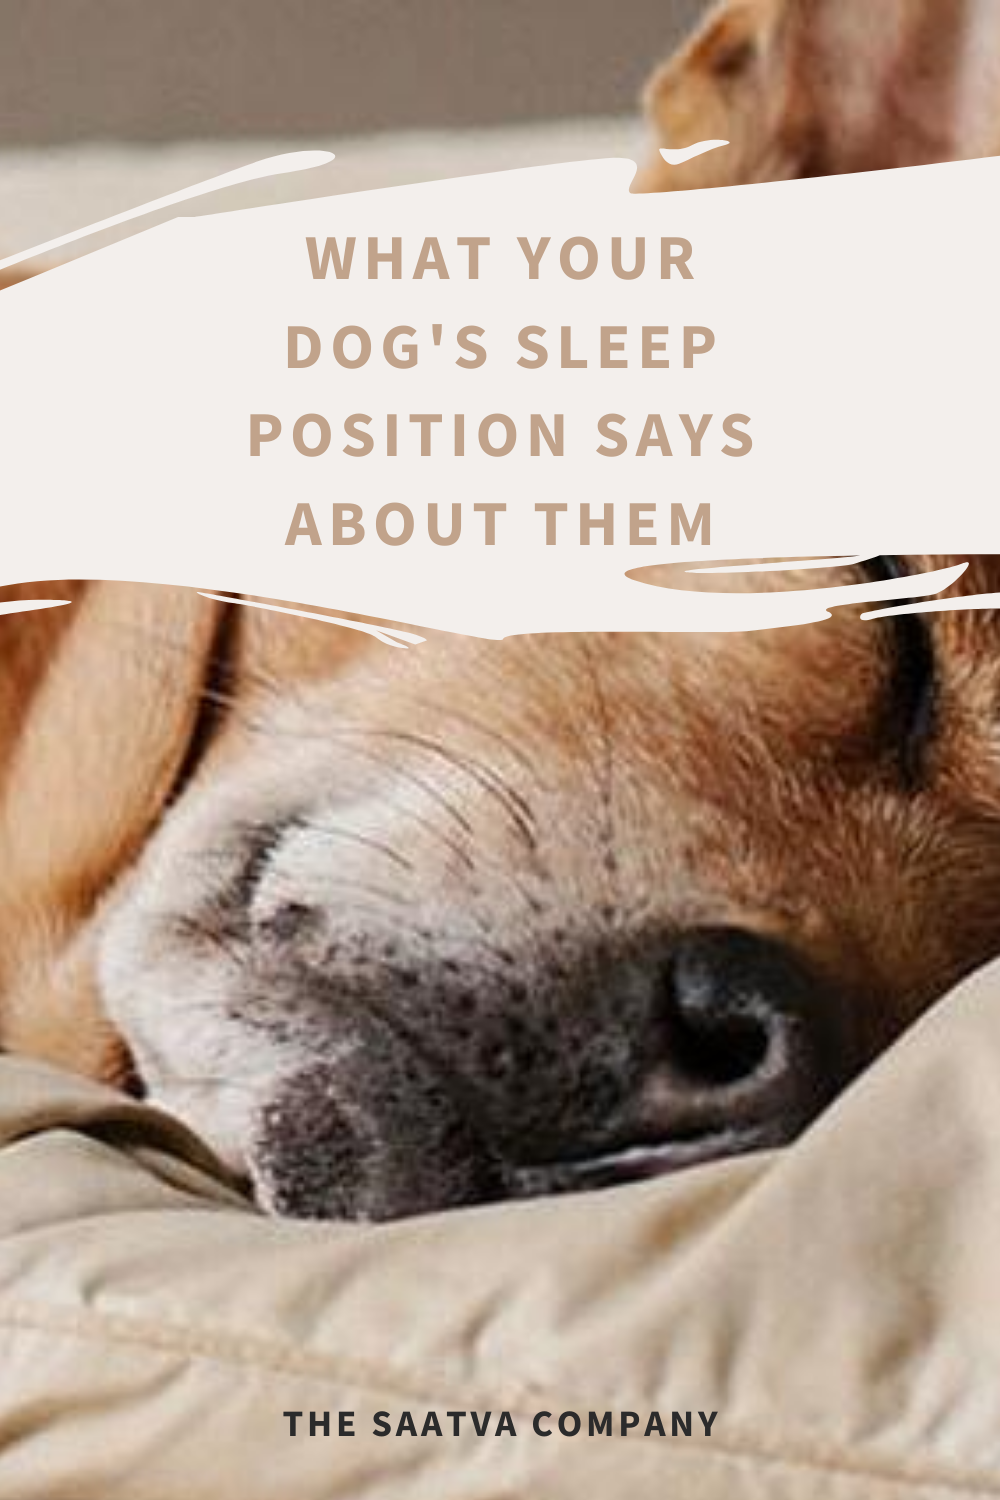 Dog Sleeping Positions And What They Mean Saatva Dog Sleeping Positions Sleeping Dogs Dog Sleeping Positions Meaning